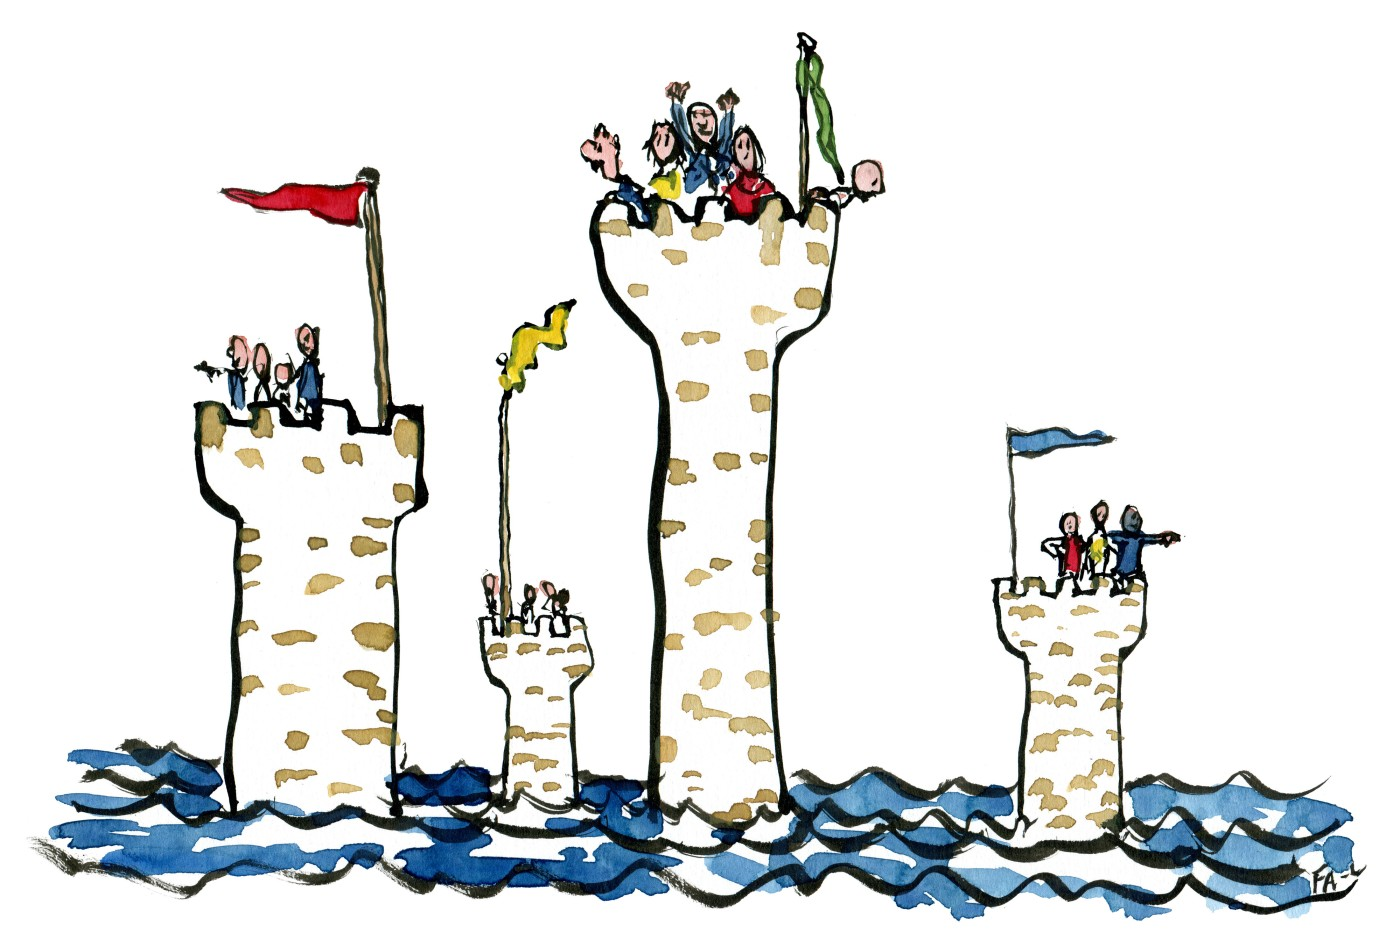 Defence tower like castles with people looking at each other far out in an ocean. Illustration by Frits Ahlefeldt